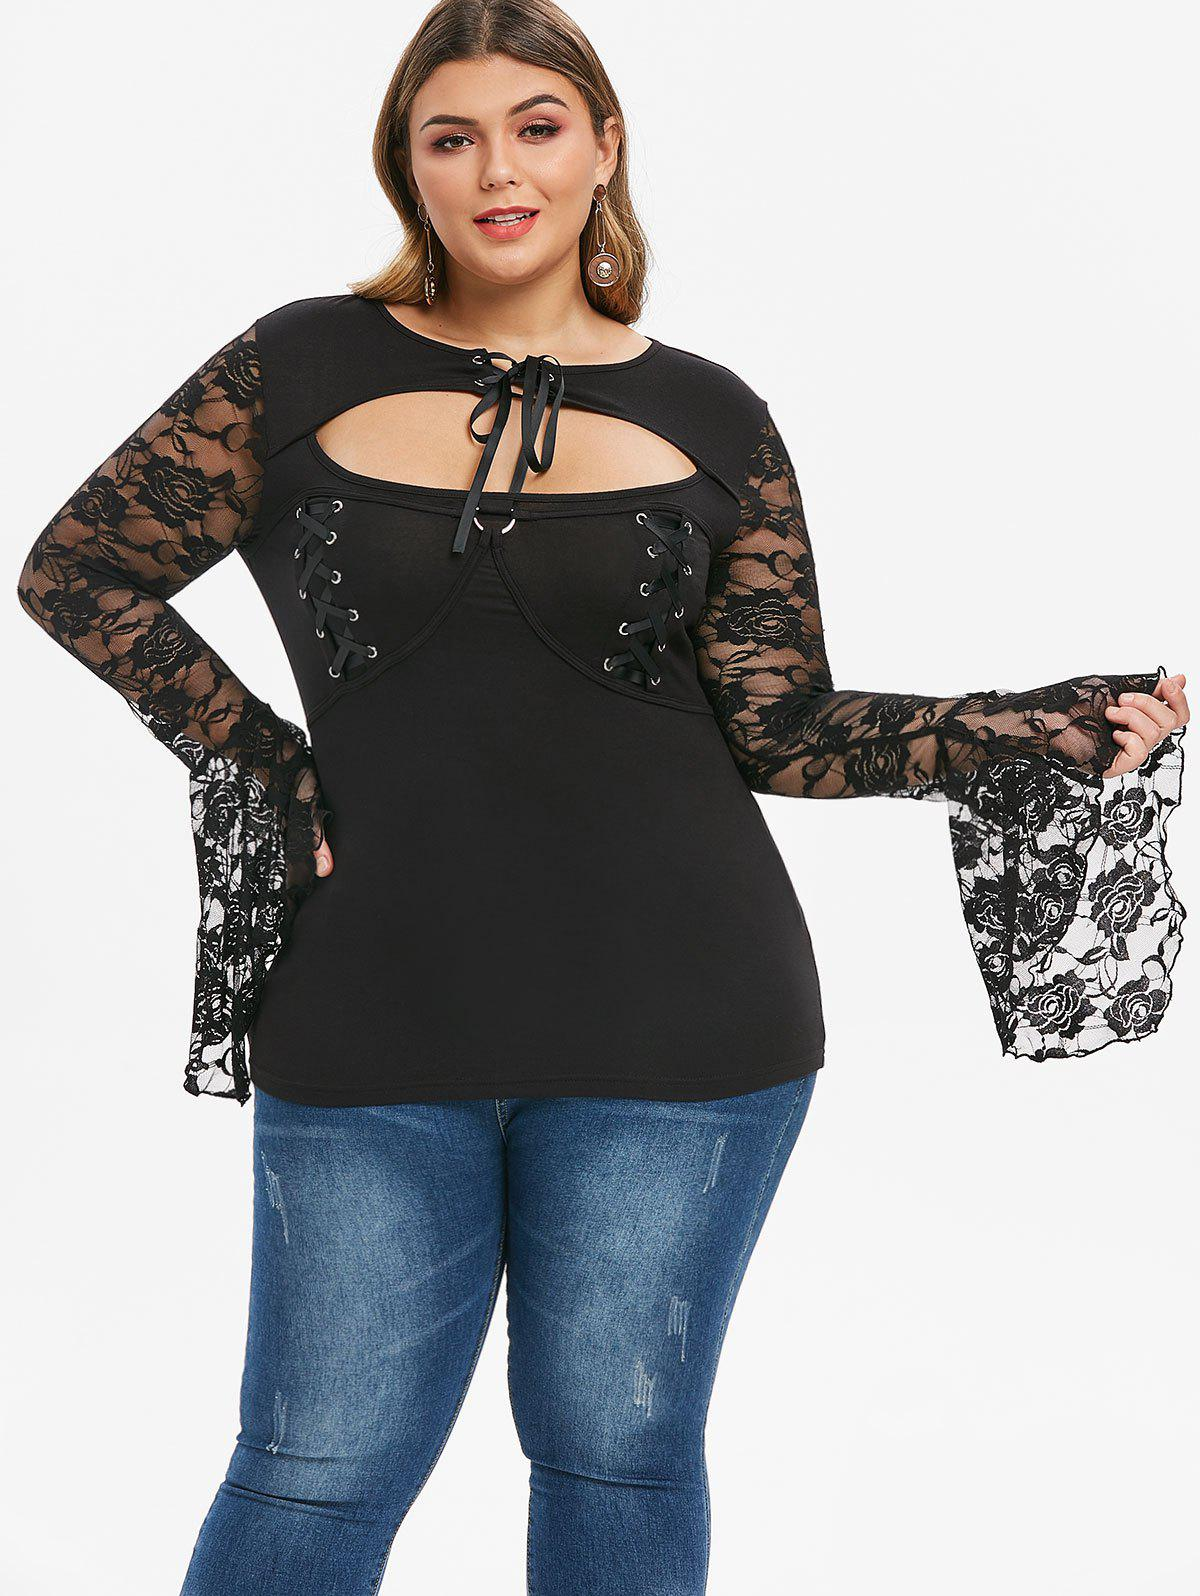 Fancy Plus Size Lace Up Sheer Cutout Flare Sleeve Gothic Tee